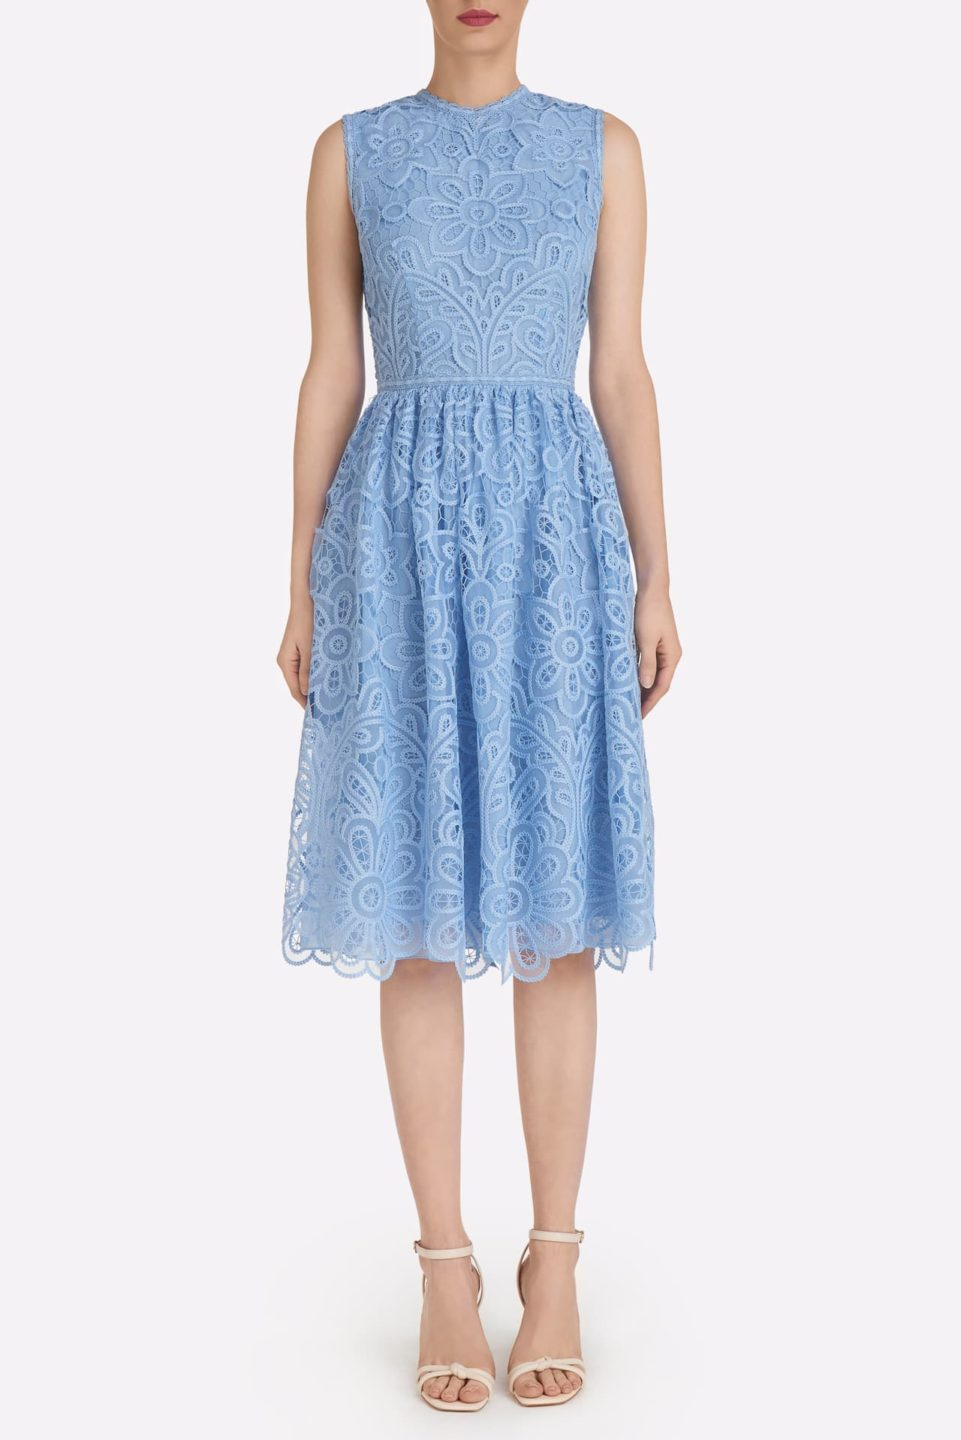 Payton SS2110 blue embroidered organza dress